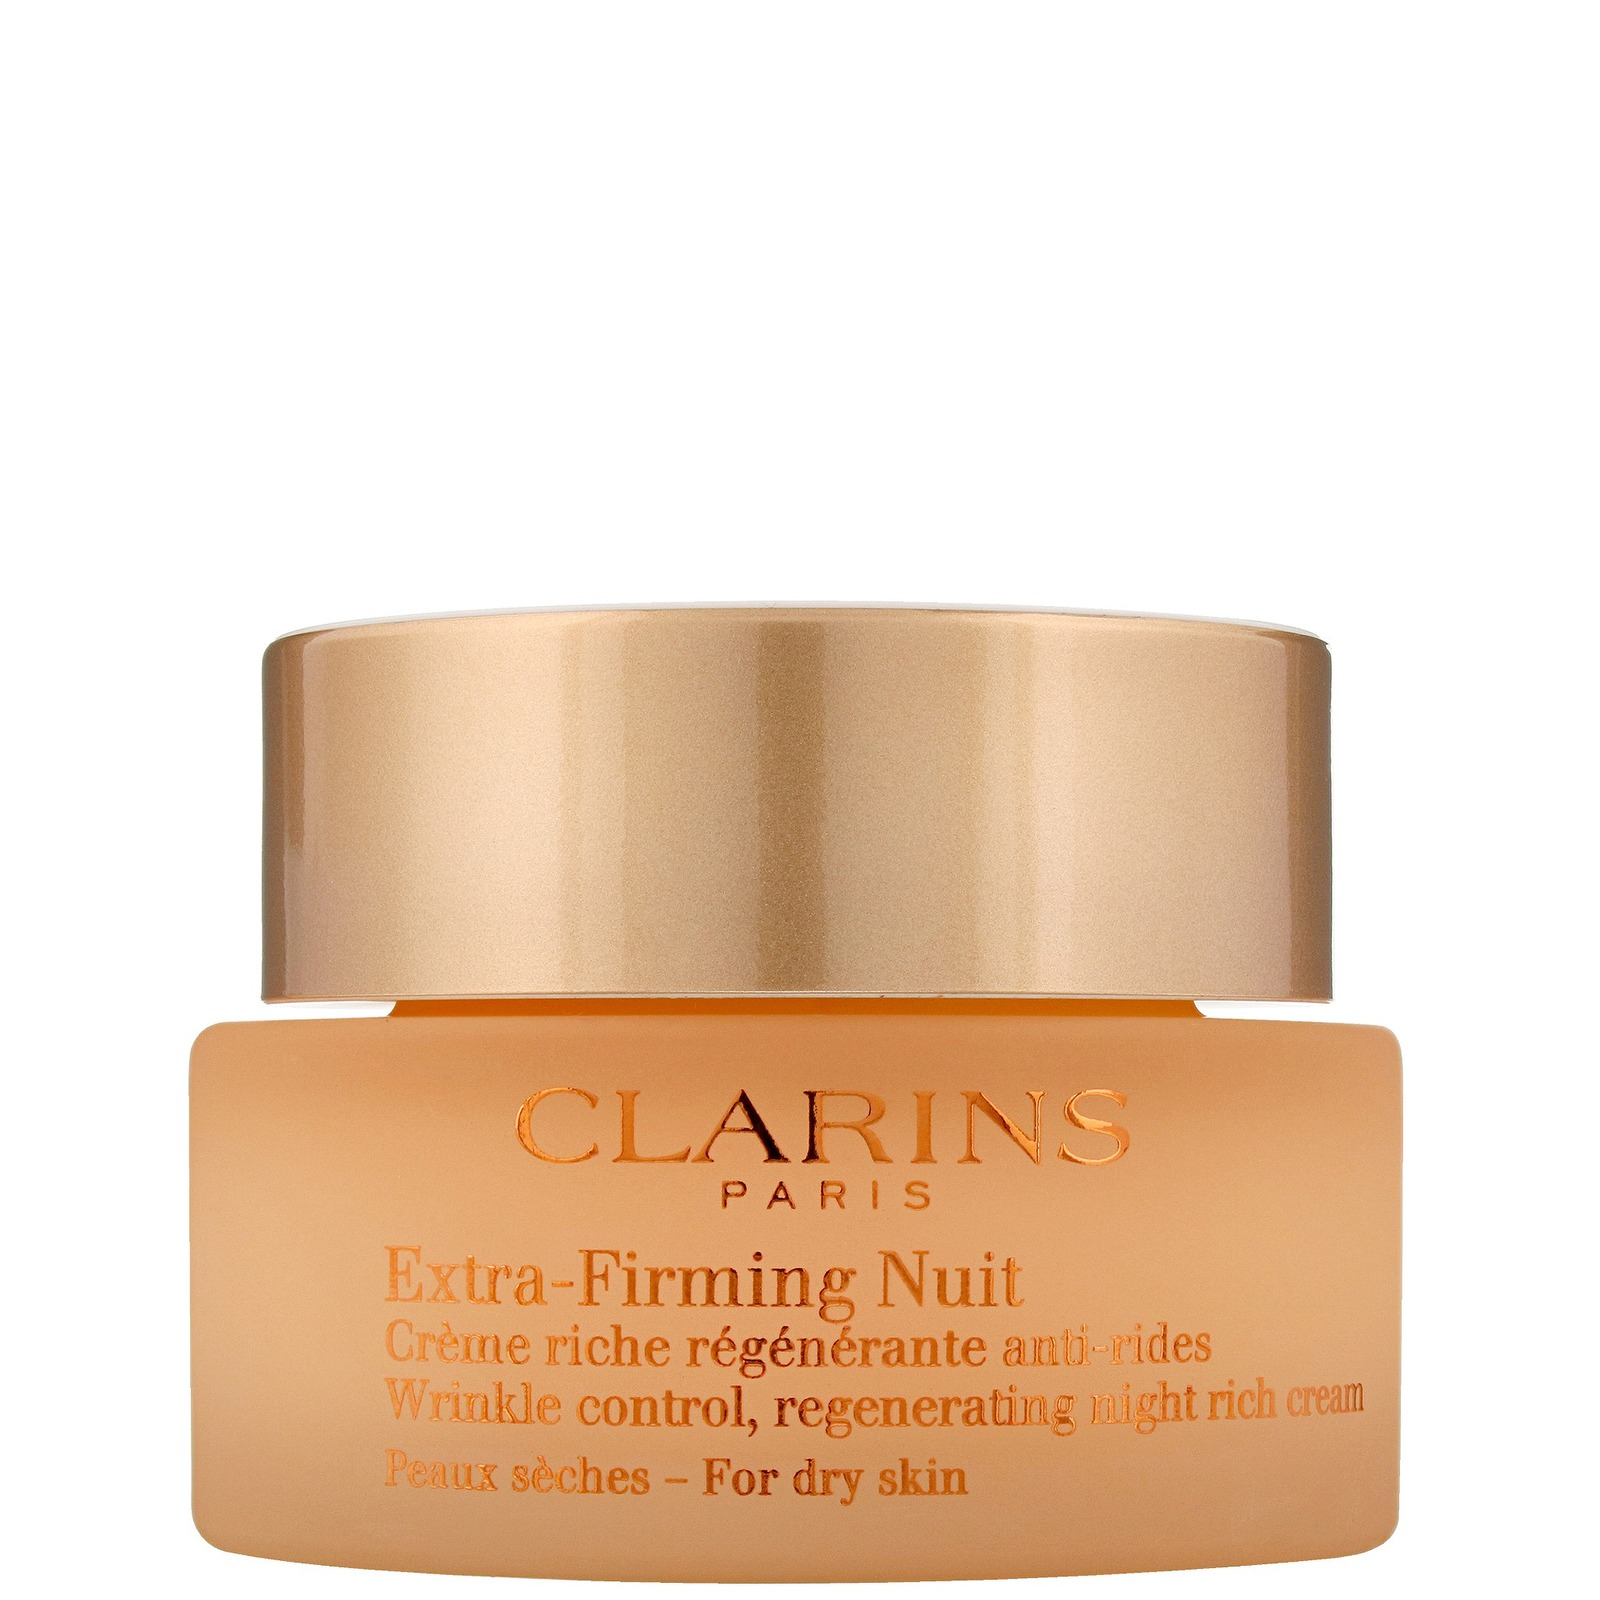 Clarins Extra-Firming Night Cream for Dry Skin 50ml / 1.6 oz.